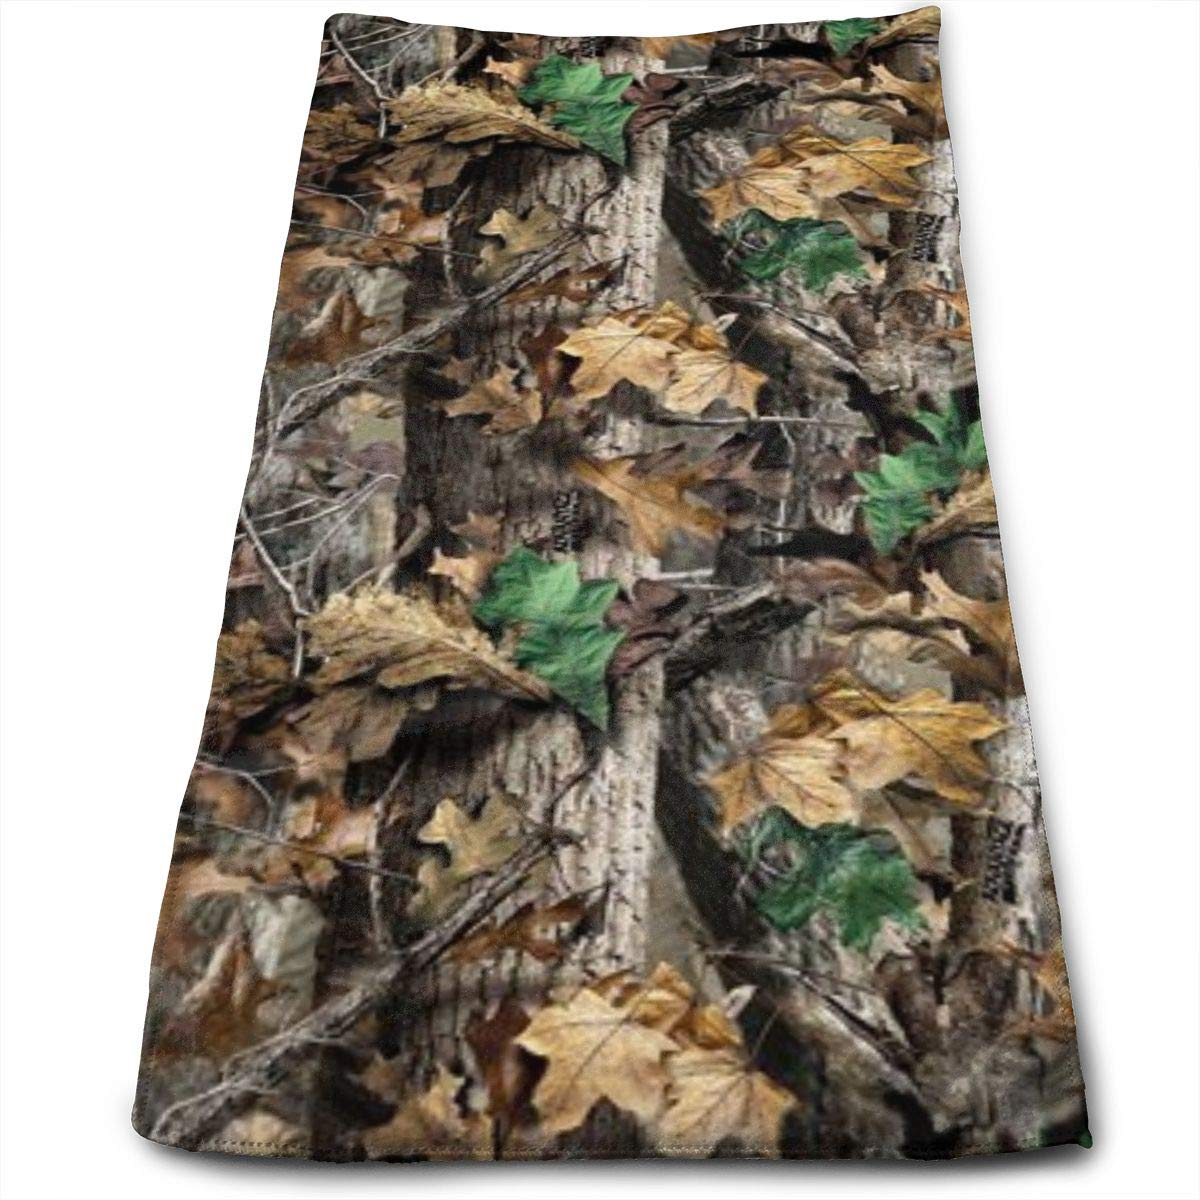 Download Realtree Camo Hand Towels Beach Towel Instant Cool Ice Towel Gym Quick Dry Towel Microfibre Towel Cooling Sports Towel 12 X 27.5 Inch